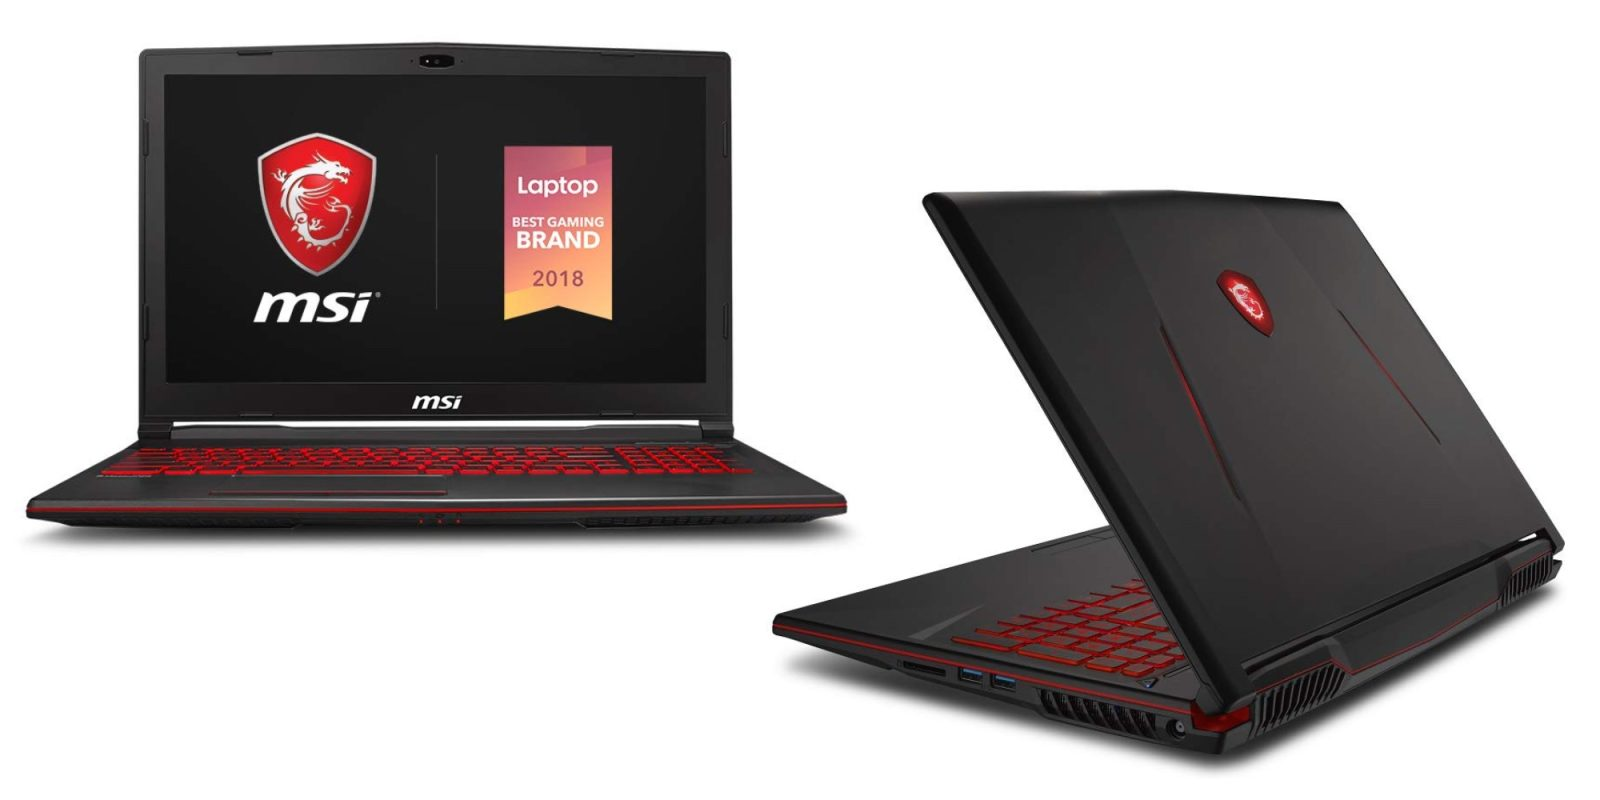 Get your game on while traveling, MSI's 15 6-inch Gaming